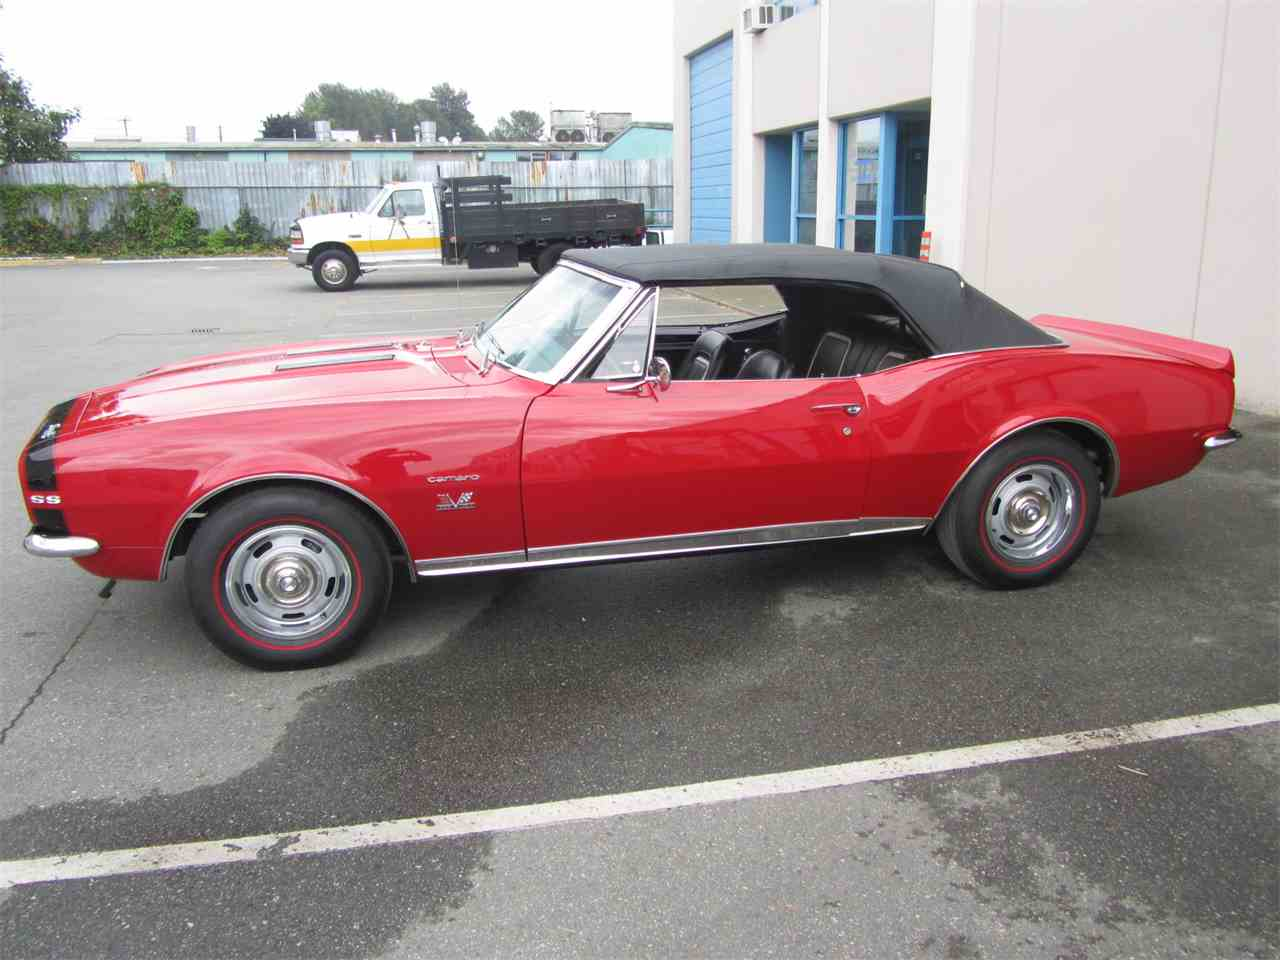 Large Picture of '67 Camaro RS/SS located in British Columbia - $49,900.00 Offered by a Private Seller - J0OR